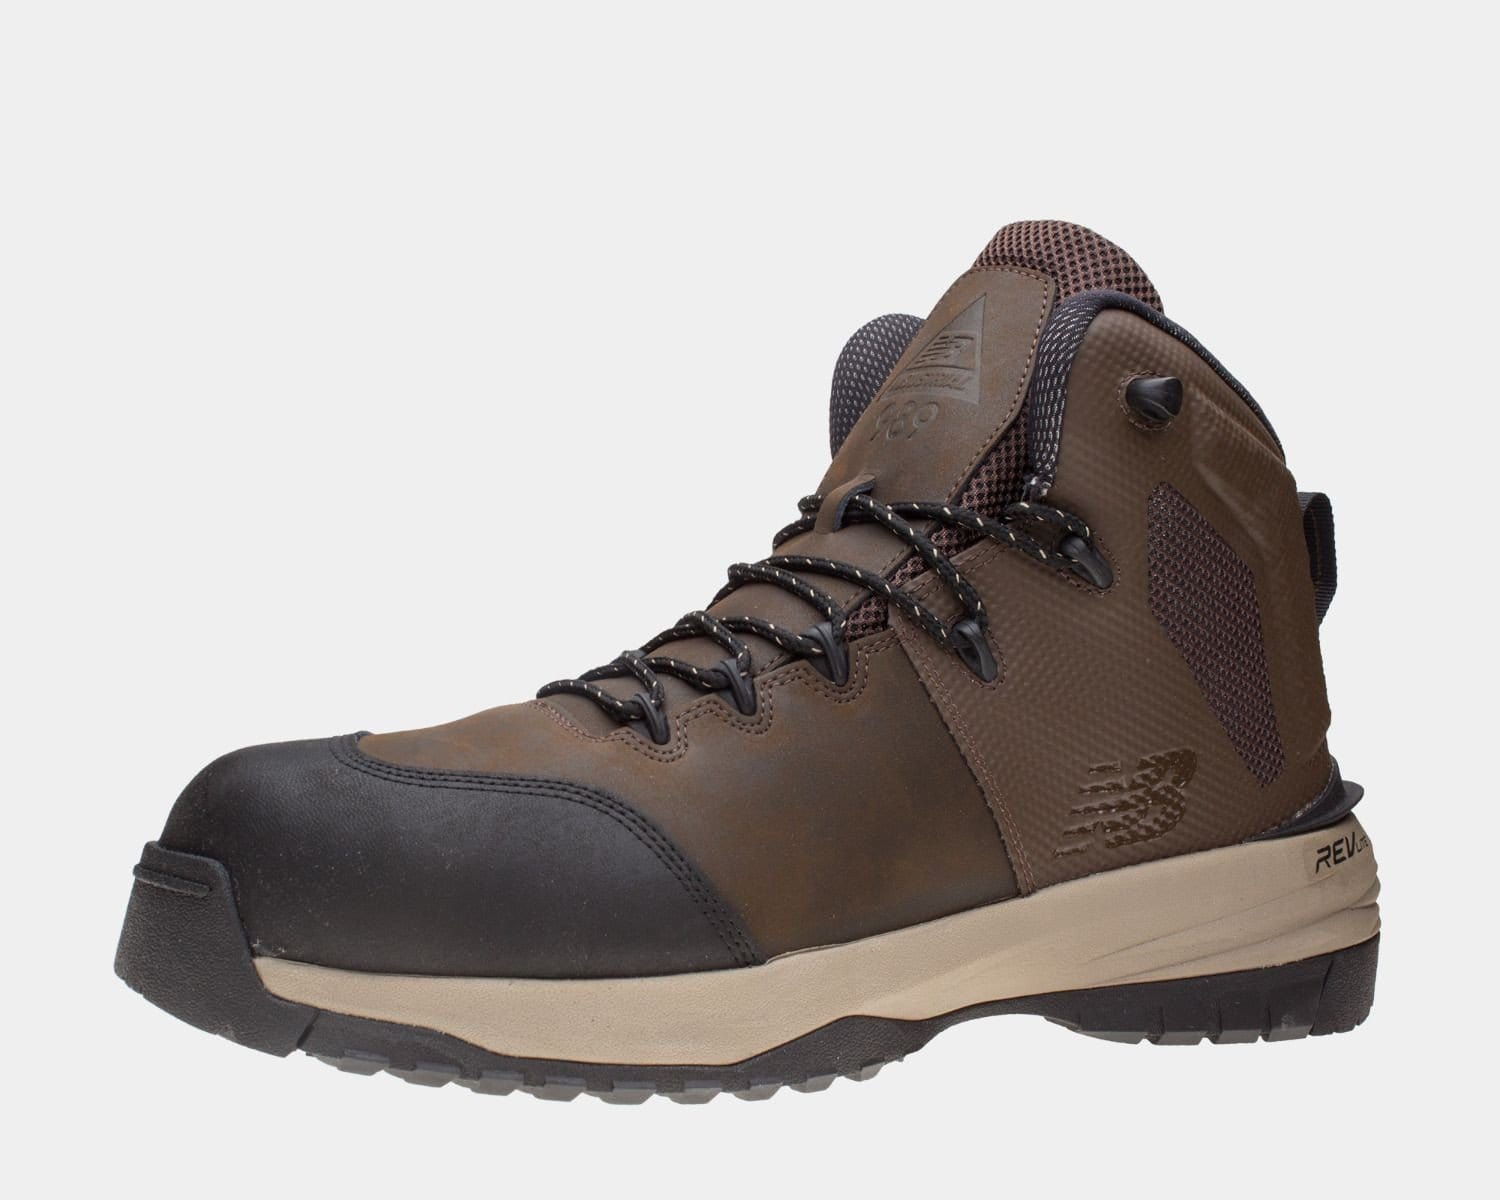 8f68cf6a03287 989 Safety Toe Boots